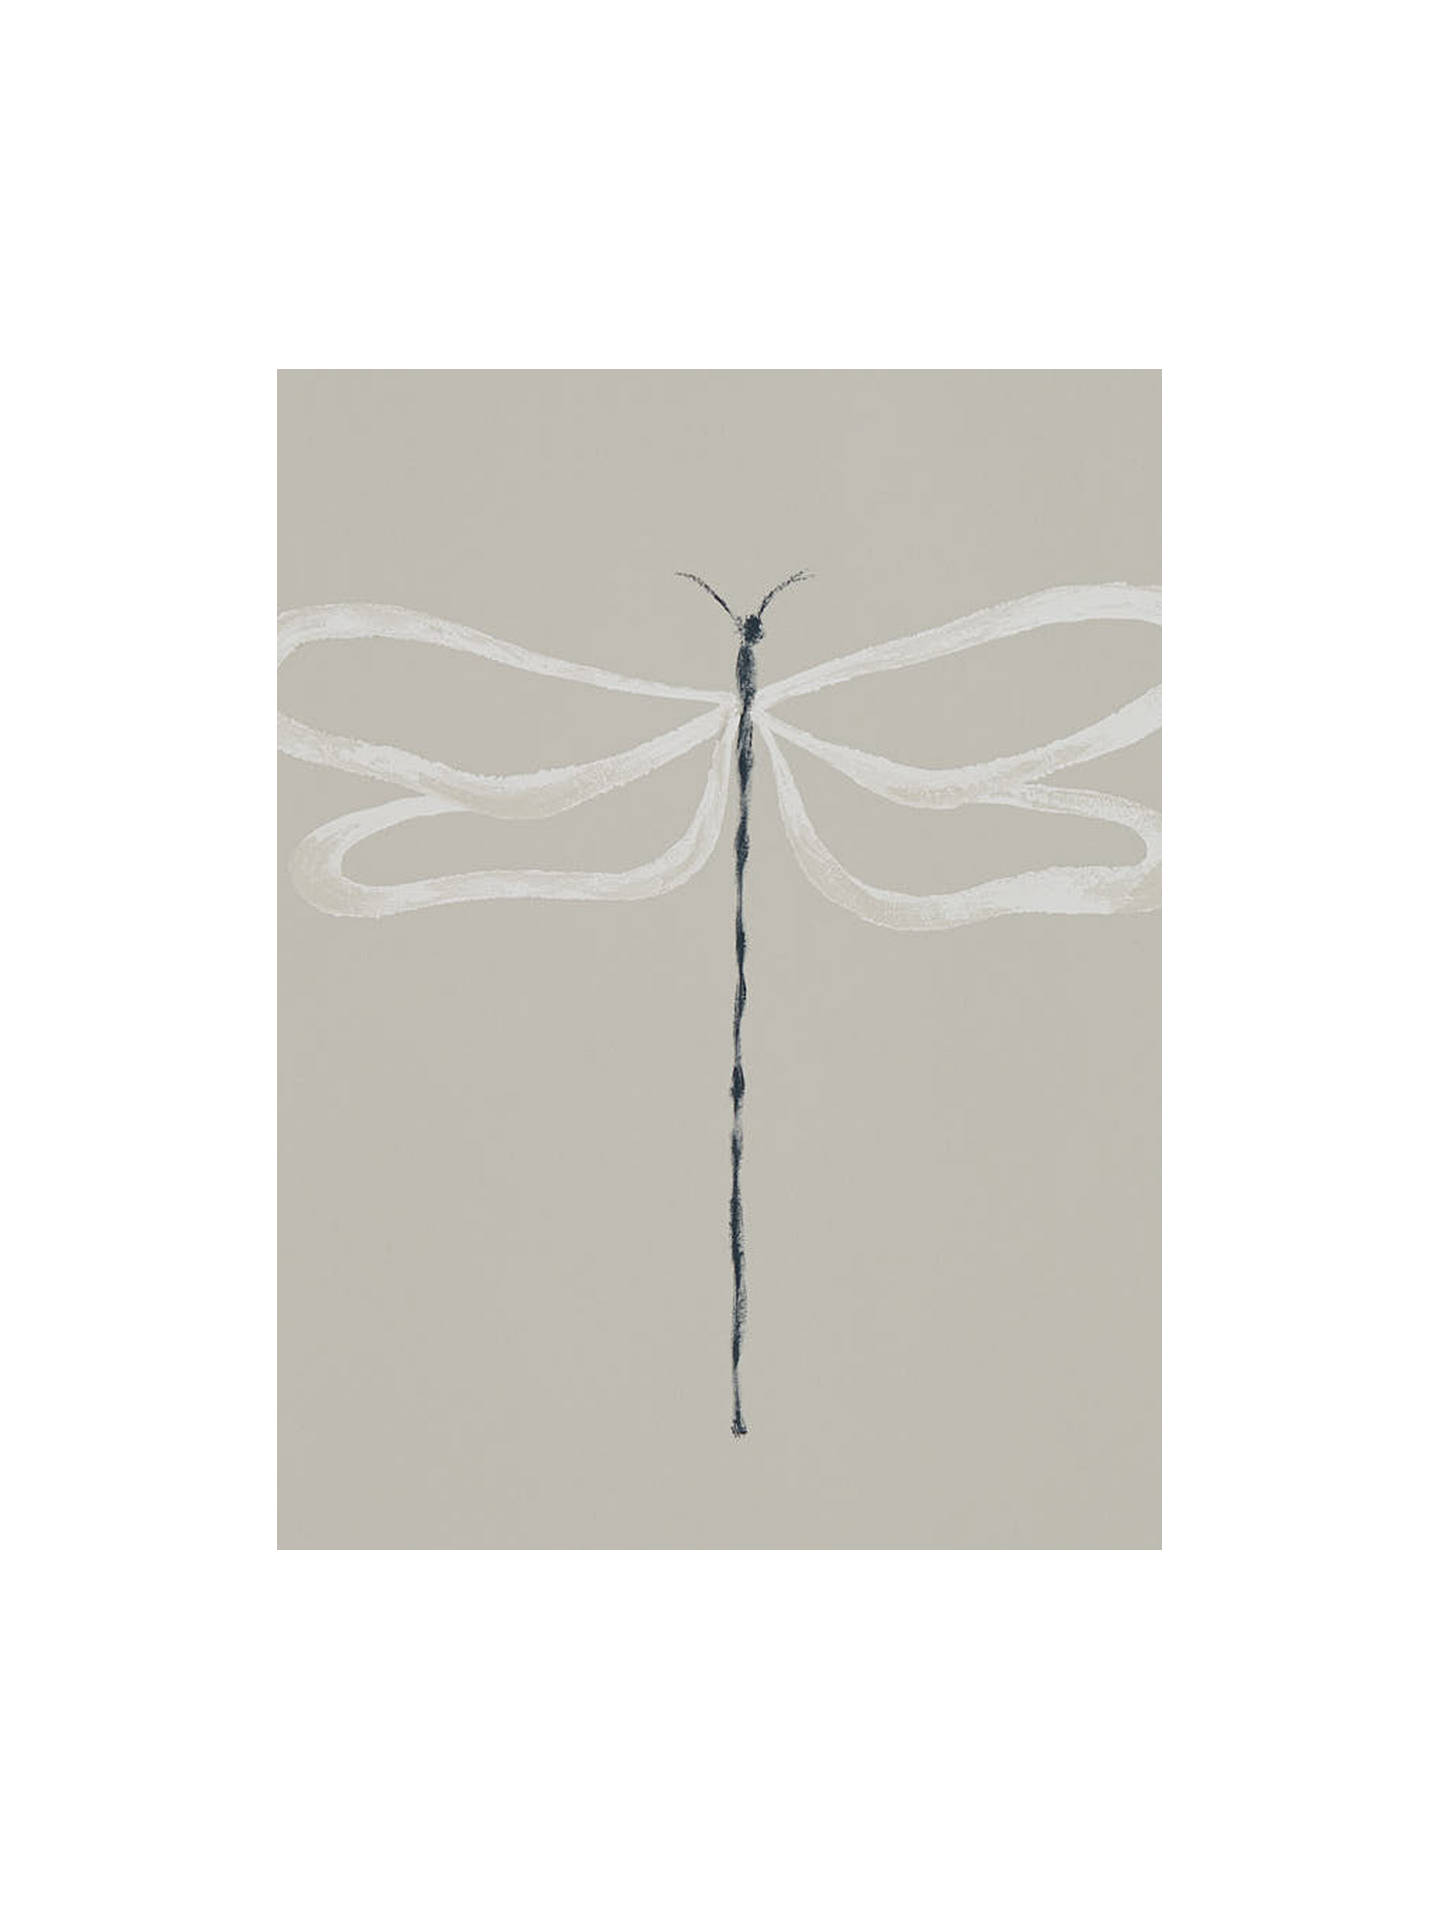 Buy Scion Dragonfly Wallpaper, Parchment 111933 Online at johnlewis.com